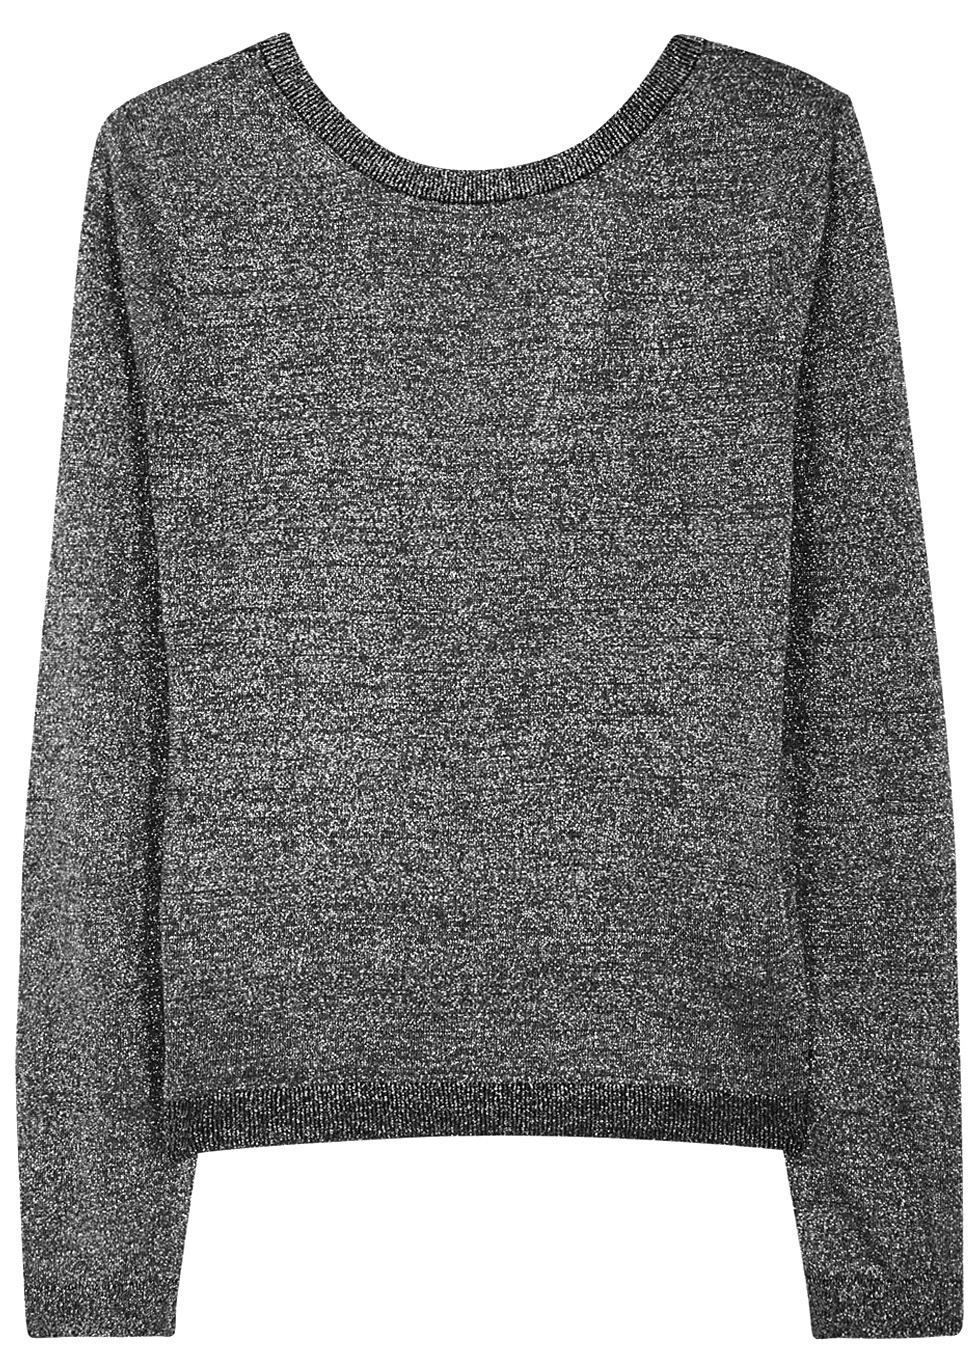 Calais Silver Low Back Cashmere Jumper - neckline: round neck; pattern: plain; style: standard; predominant colour: silver; occasions: casual, work, creative work; length: standard; fit: standard fit; fibres: cashmere - 100%; sleeve length: long sleeve; sleeve style: standard; texture group: knits/crochet; pattern type: knitted - fine stitch; season: a/w 2016; wardrobe: highlight